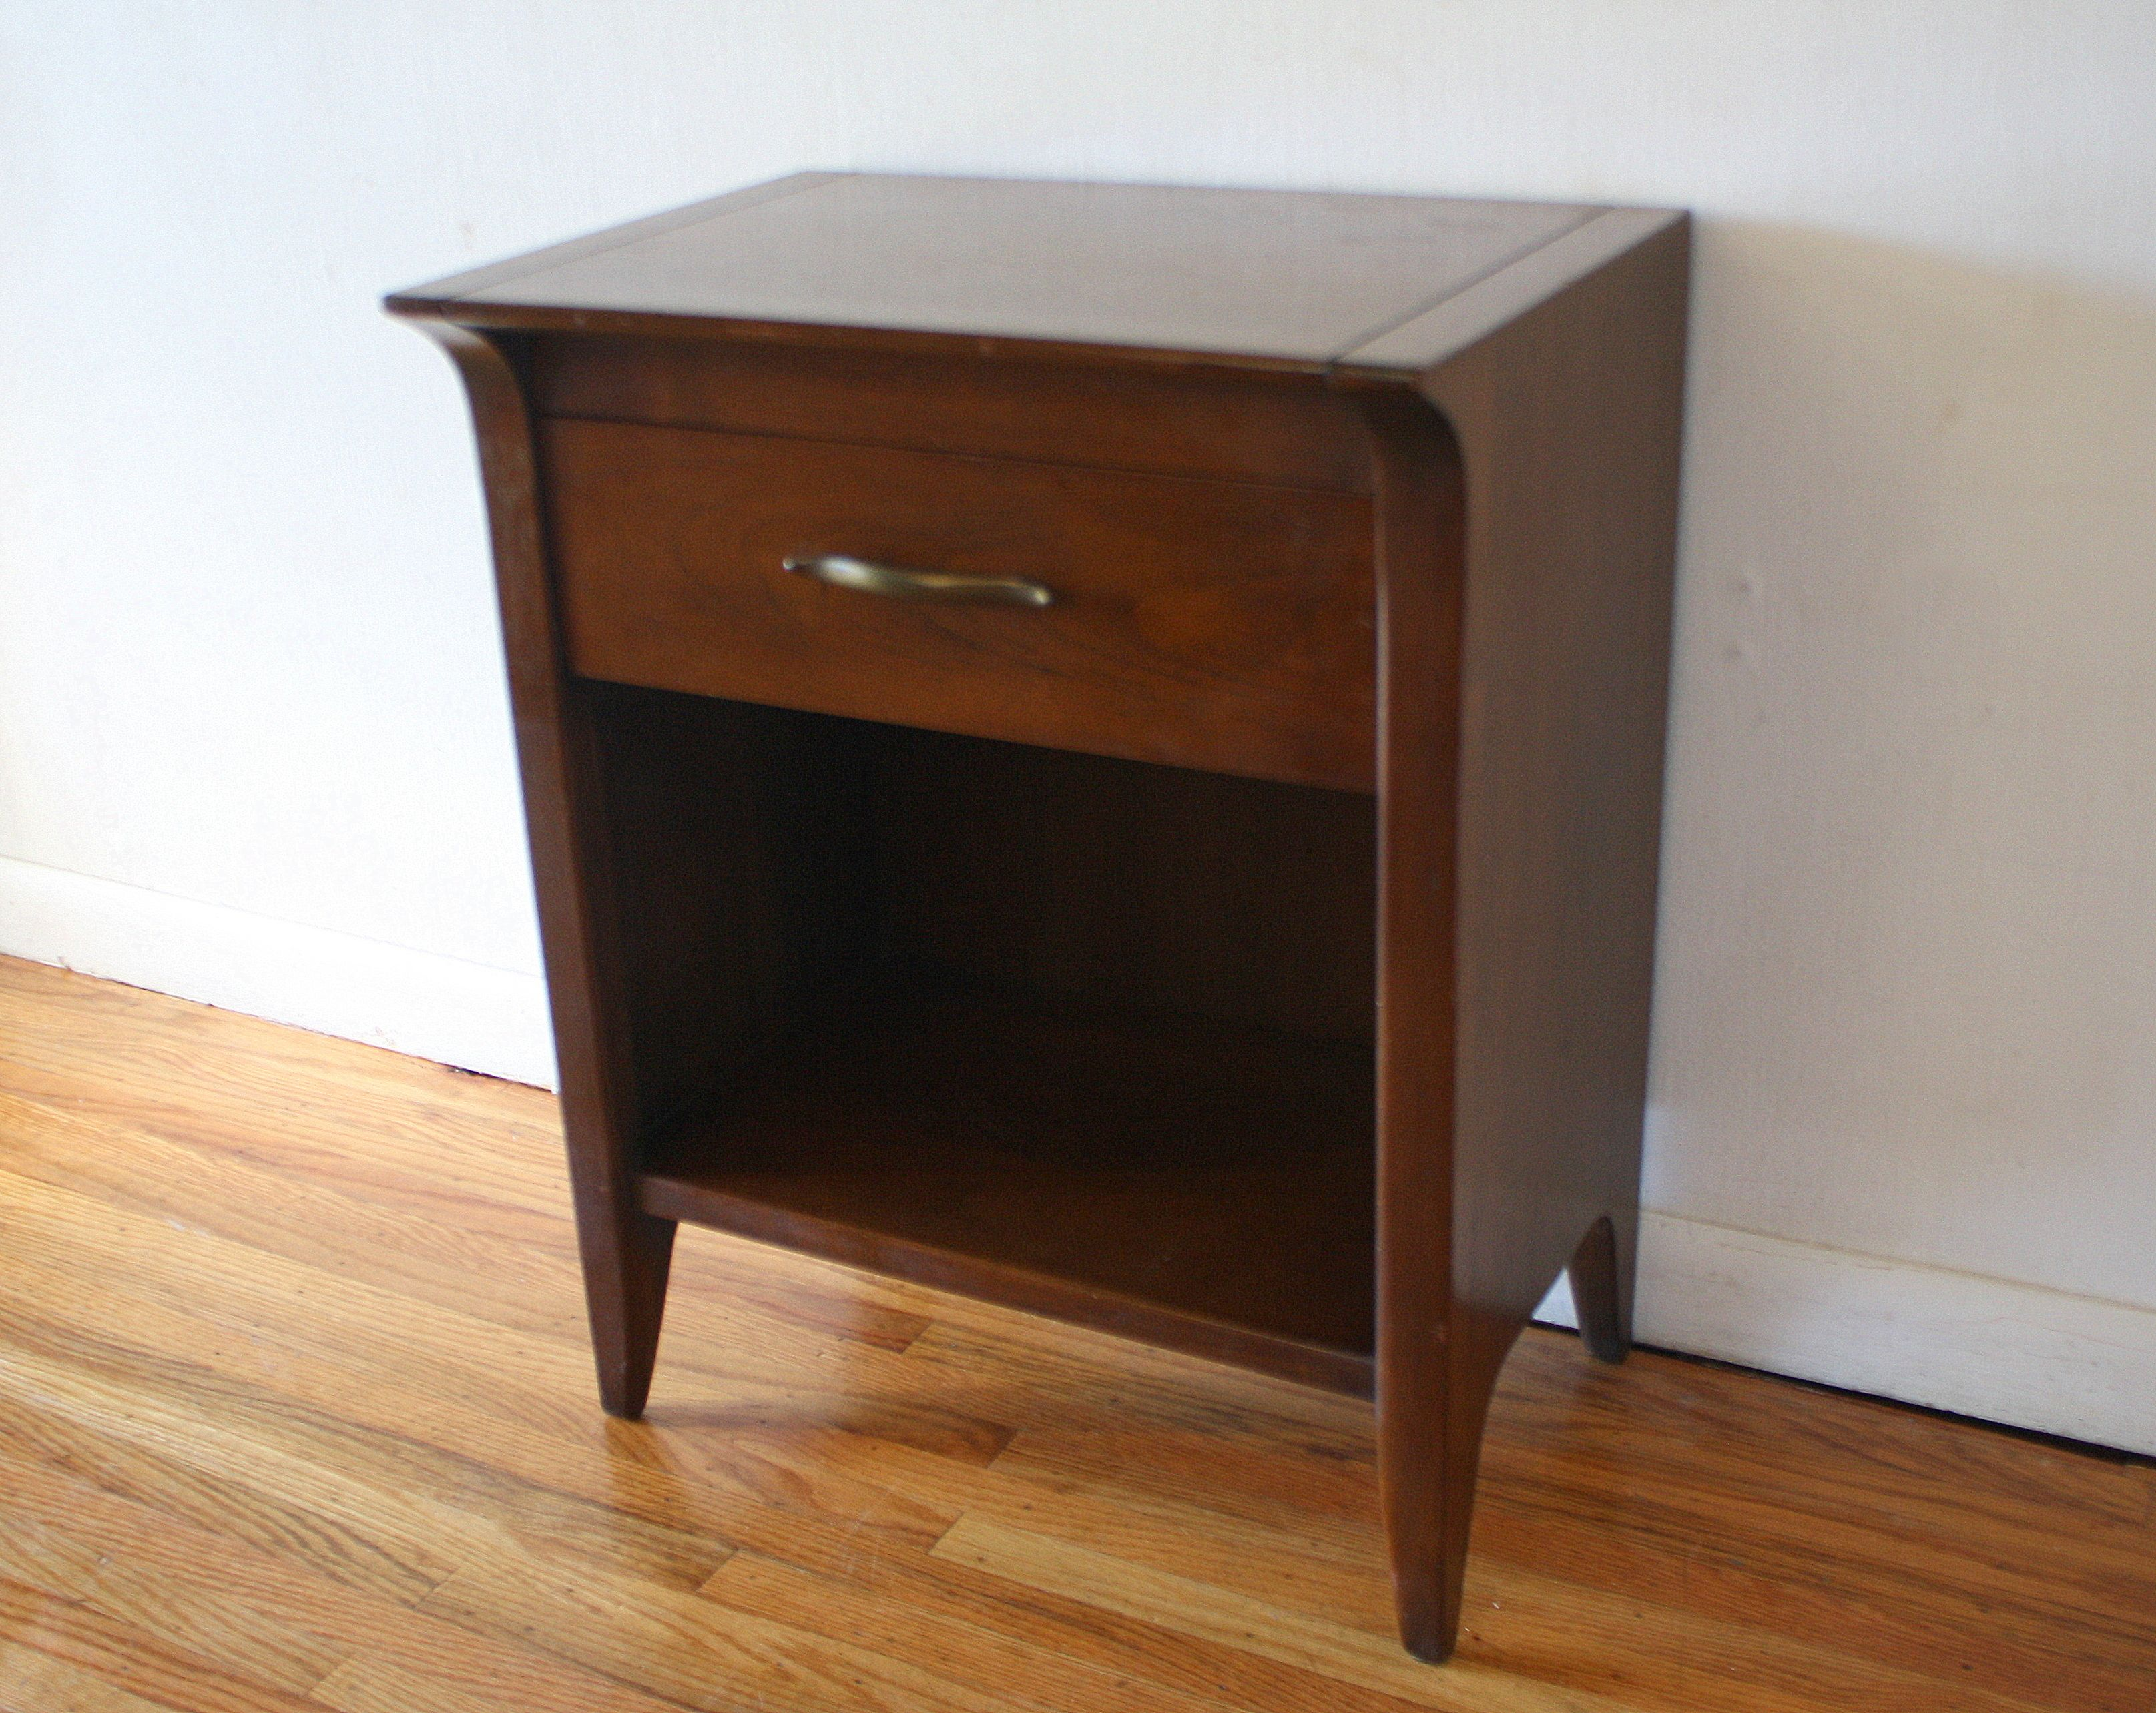 Image of Drexel Accolode Console Bar Cabinet